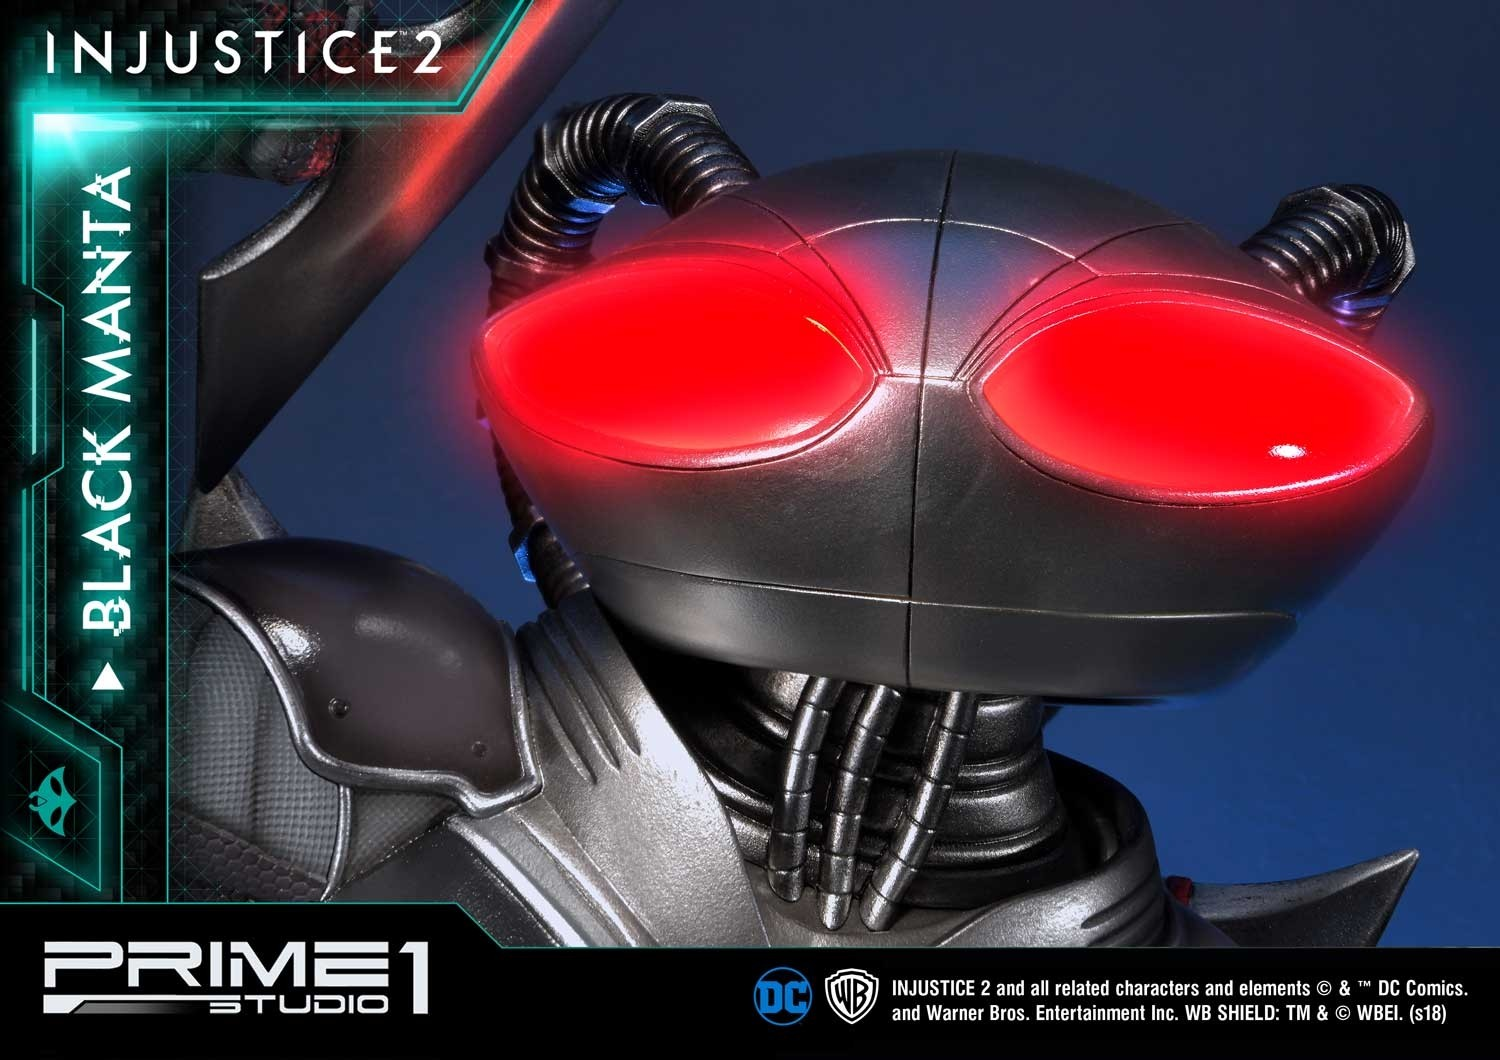 Link a Prime-1-Injustice-2-Black-Manta-022